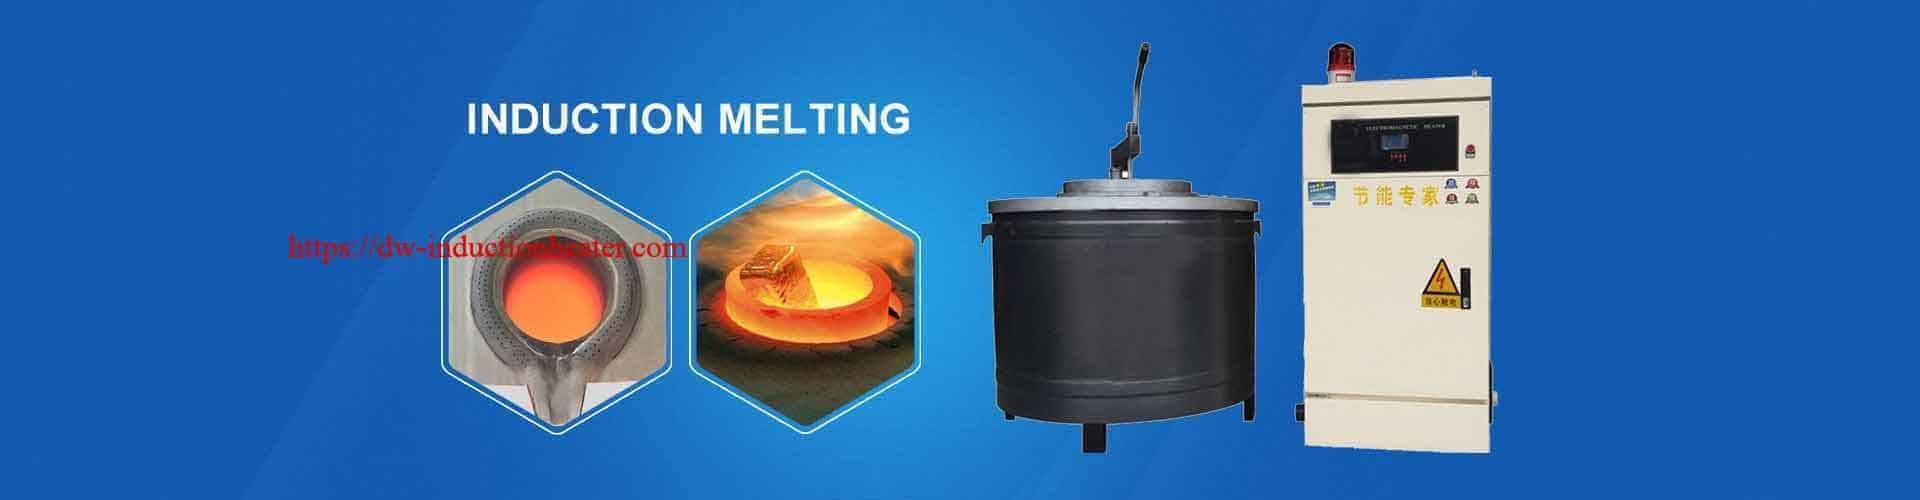 induction-metal-melting-furnace